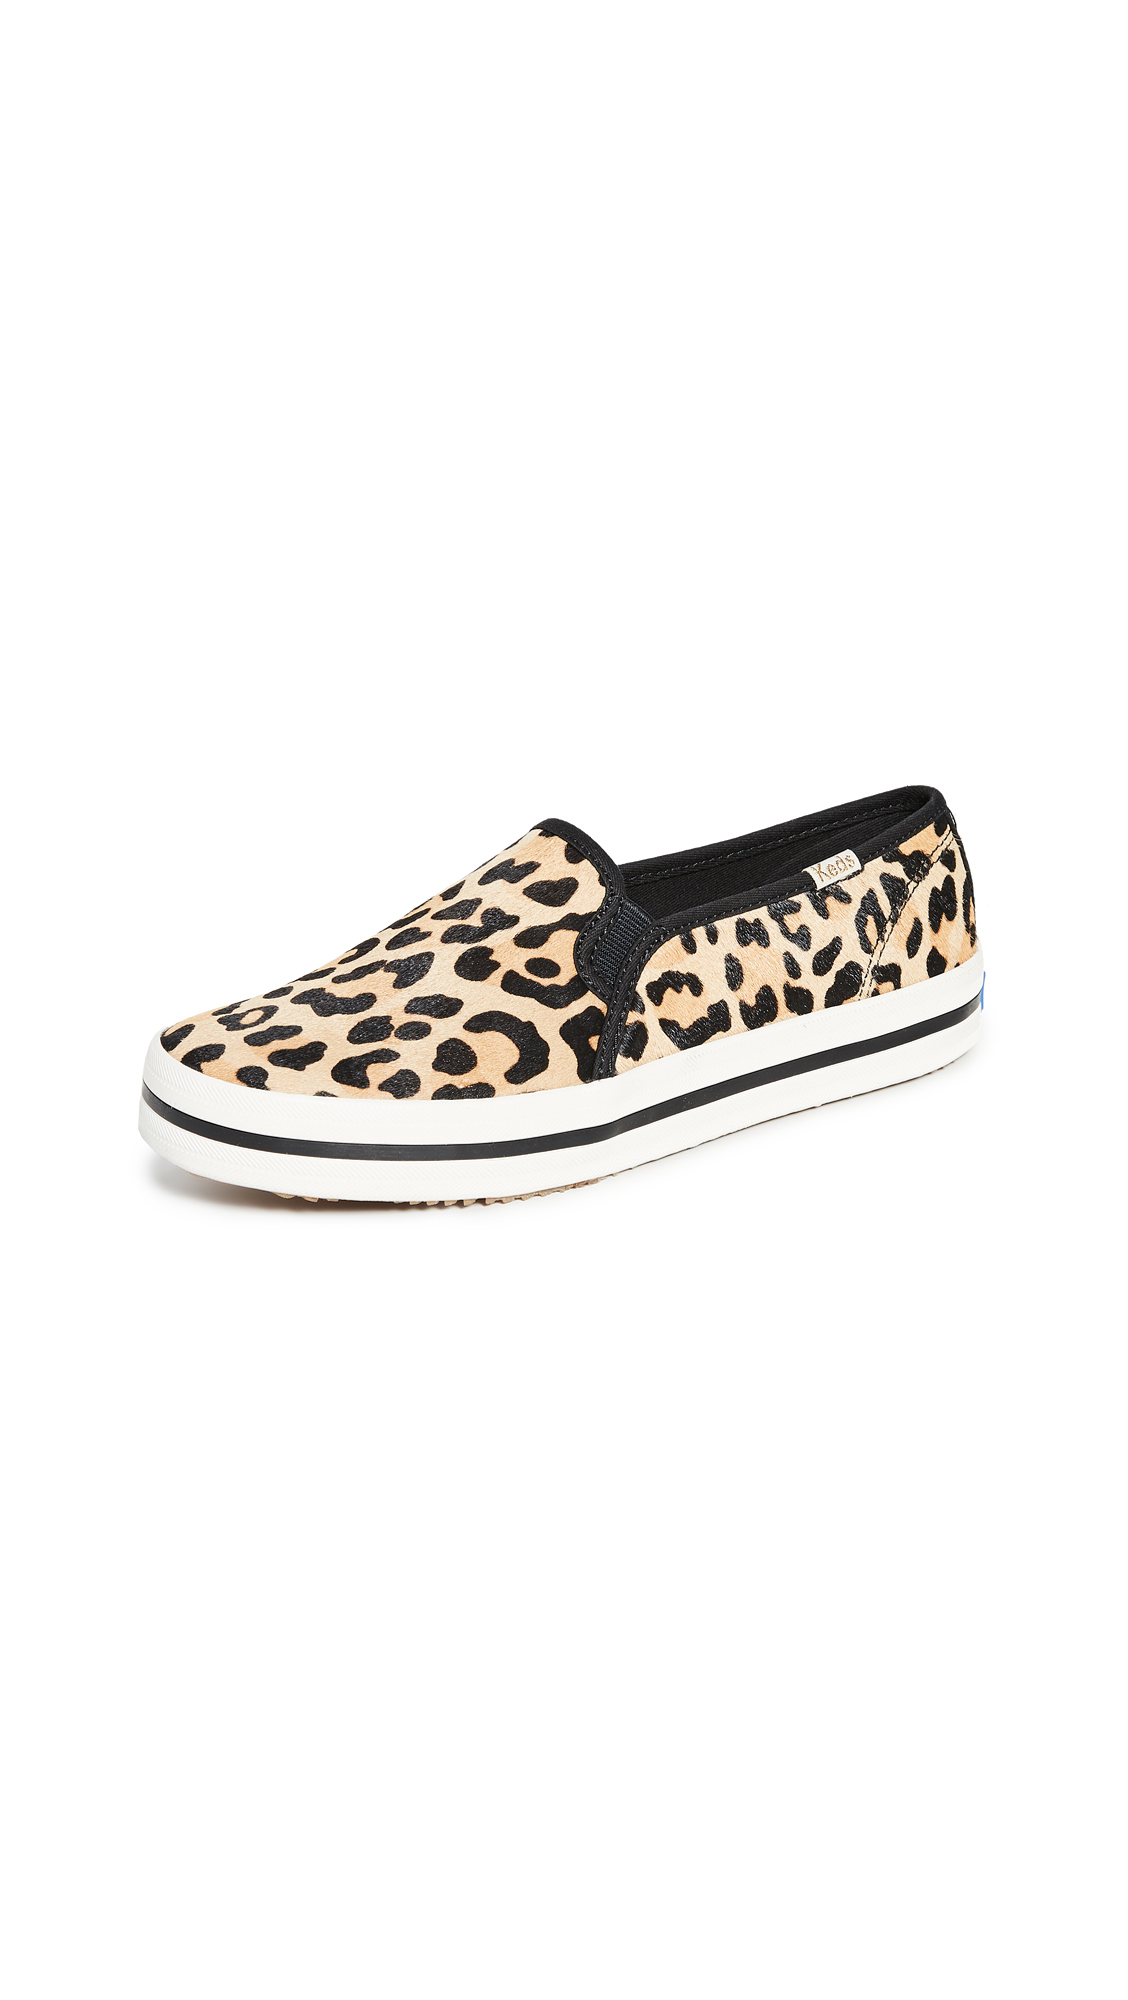 Buy Keds x Kate Spade New York Double Decker Sneakers online, shop Keds